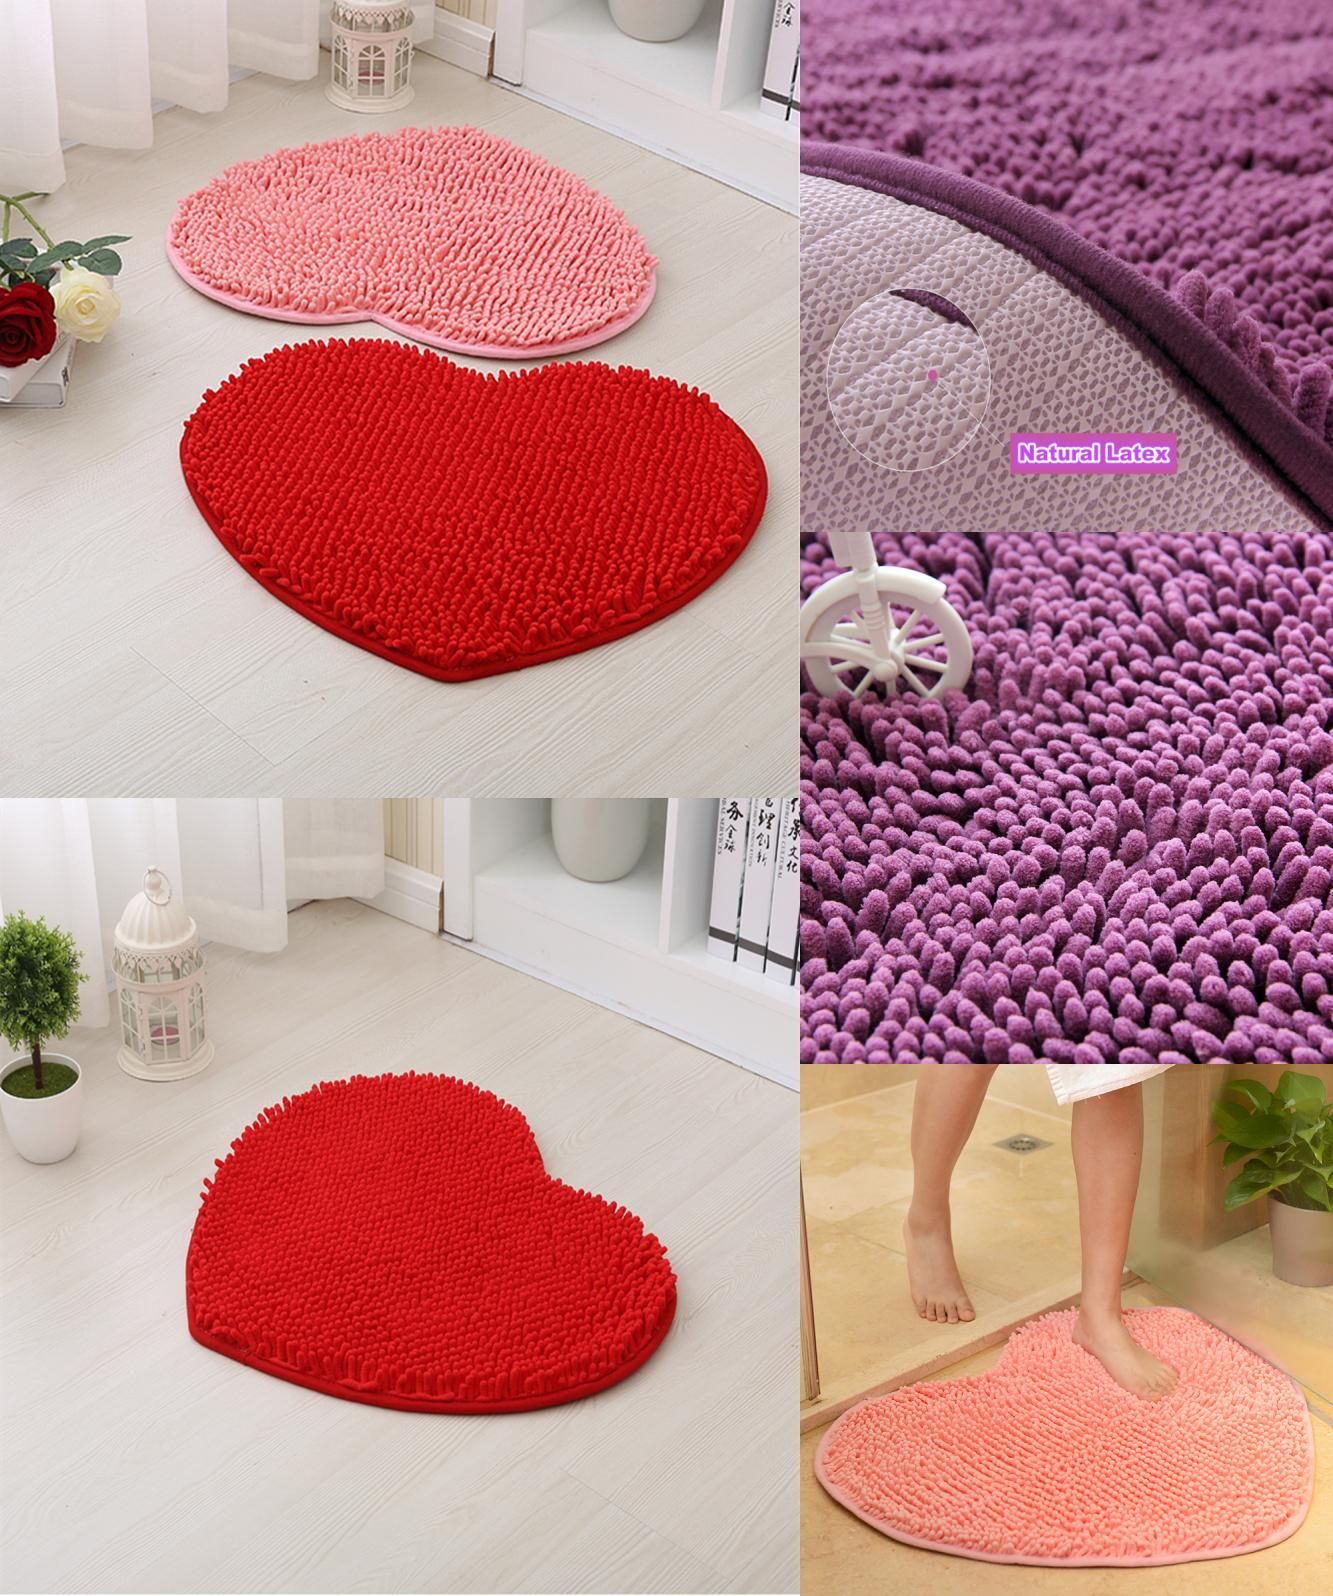 Visit To Buy Pcs Home Decor Fluffy Cm Love Heart Shape Non - Fluffy bath mat for bathroom decorating ideas